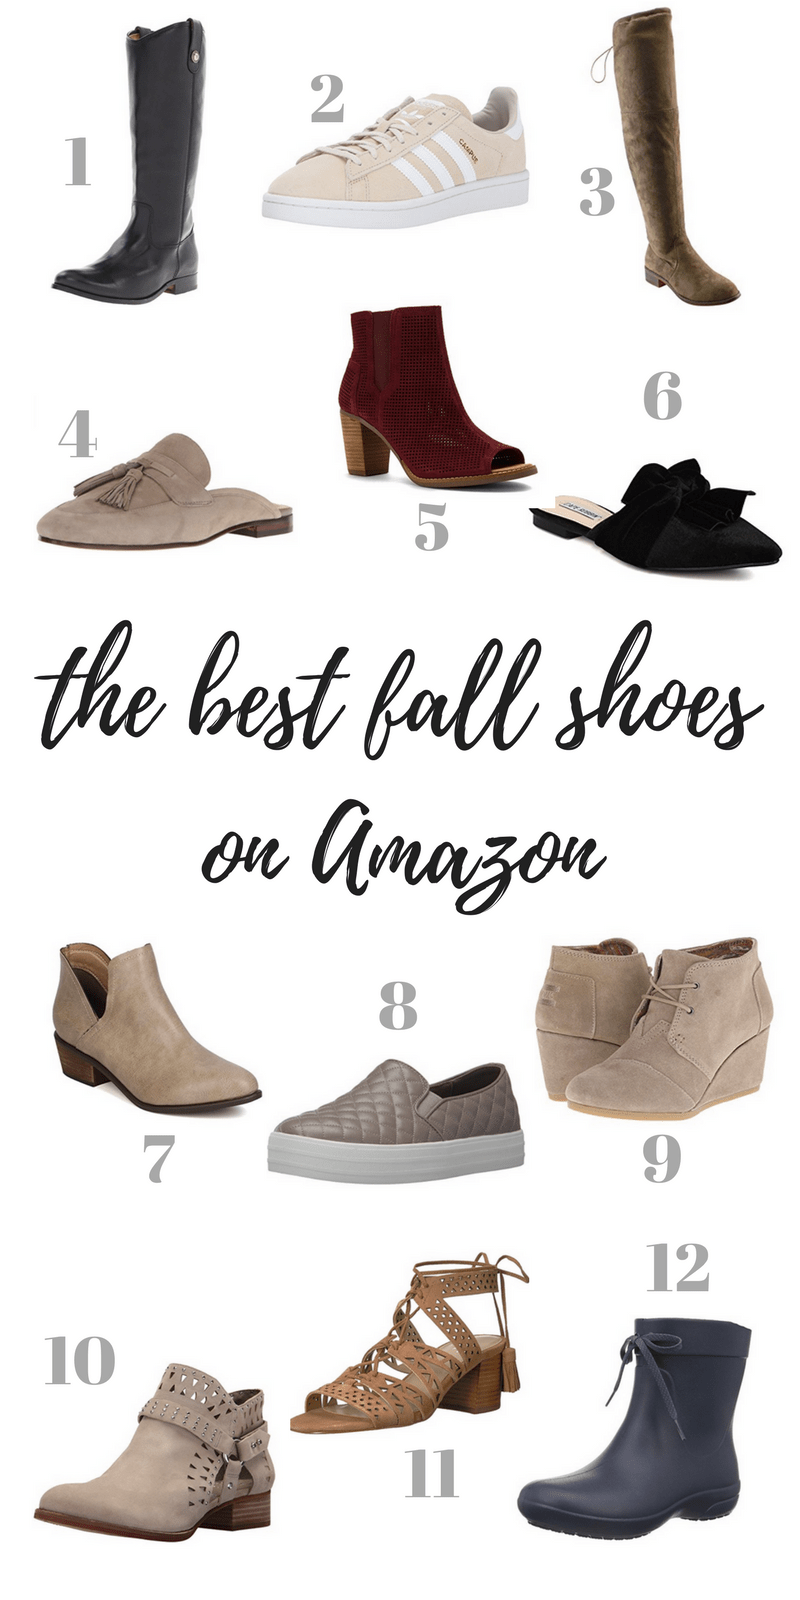 The Best Fall Shoes on Amazon - Casual